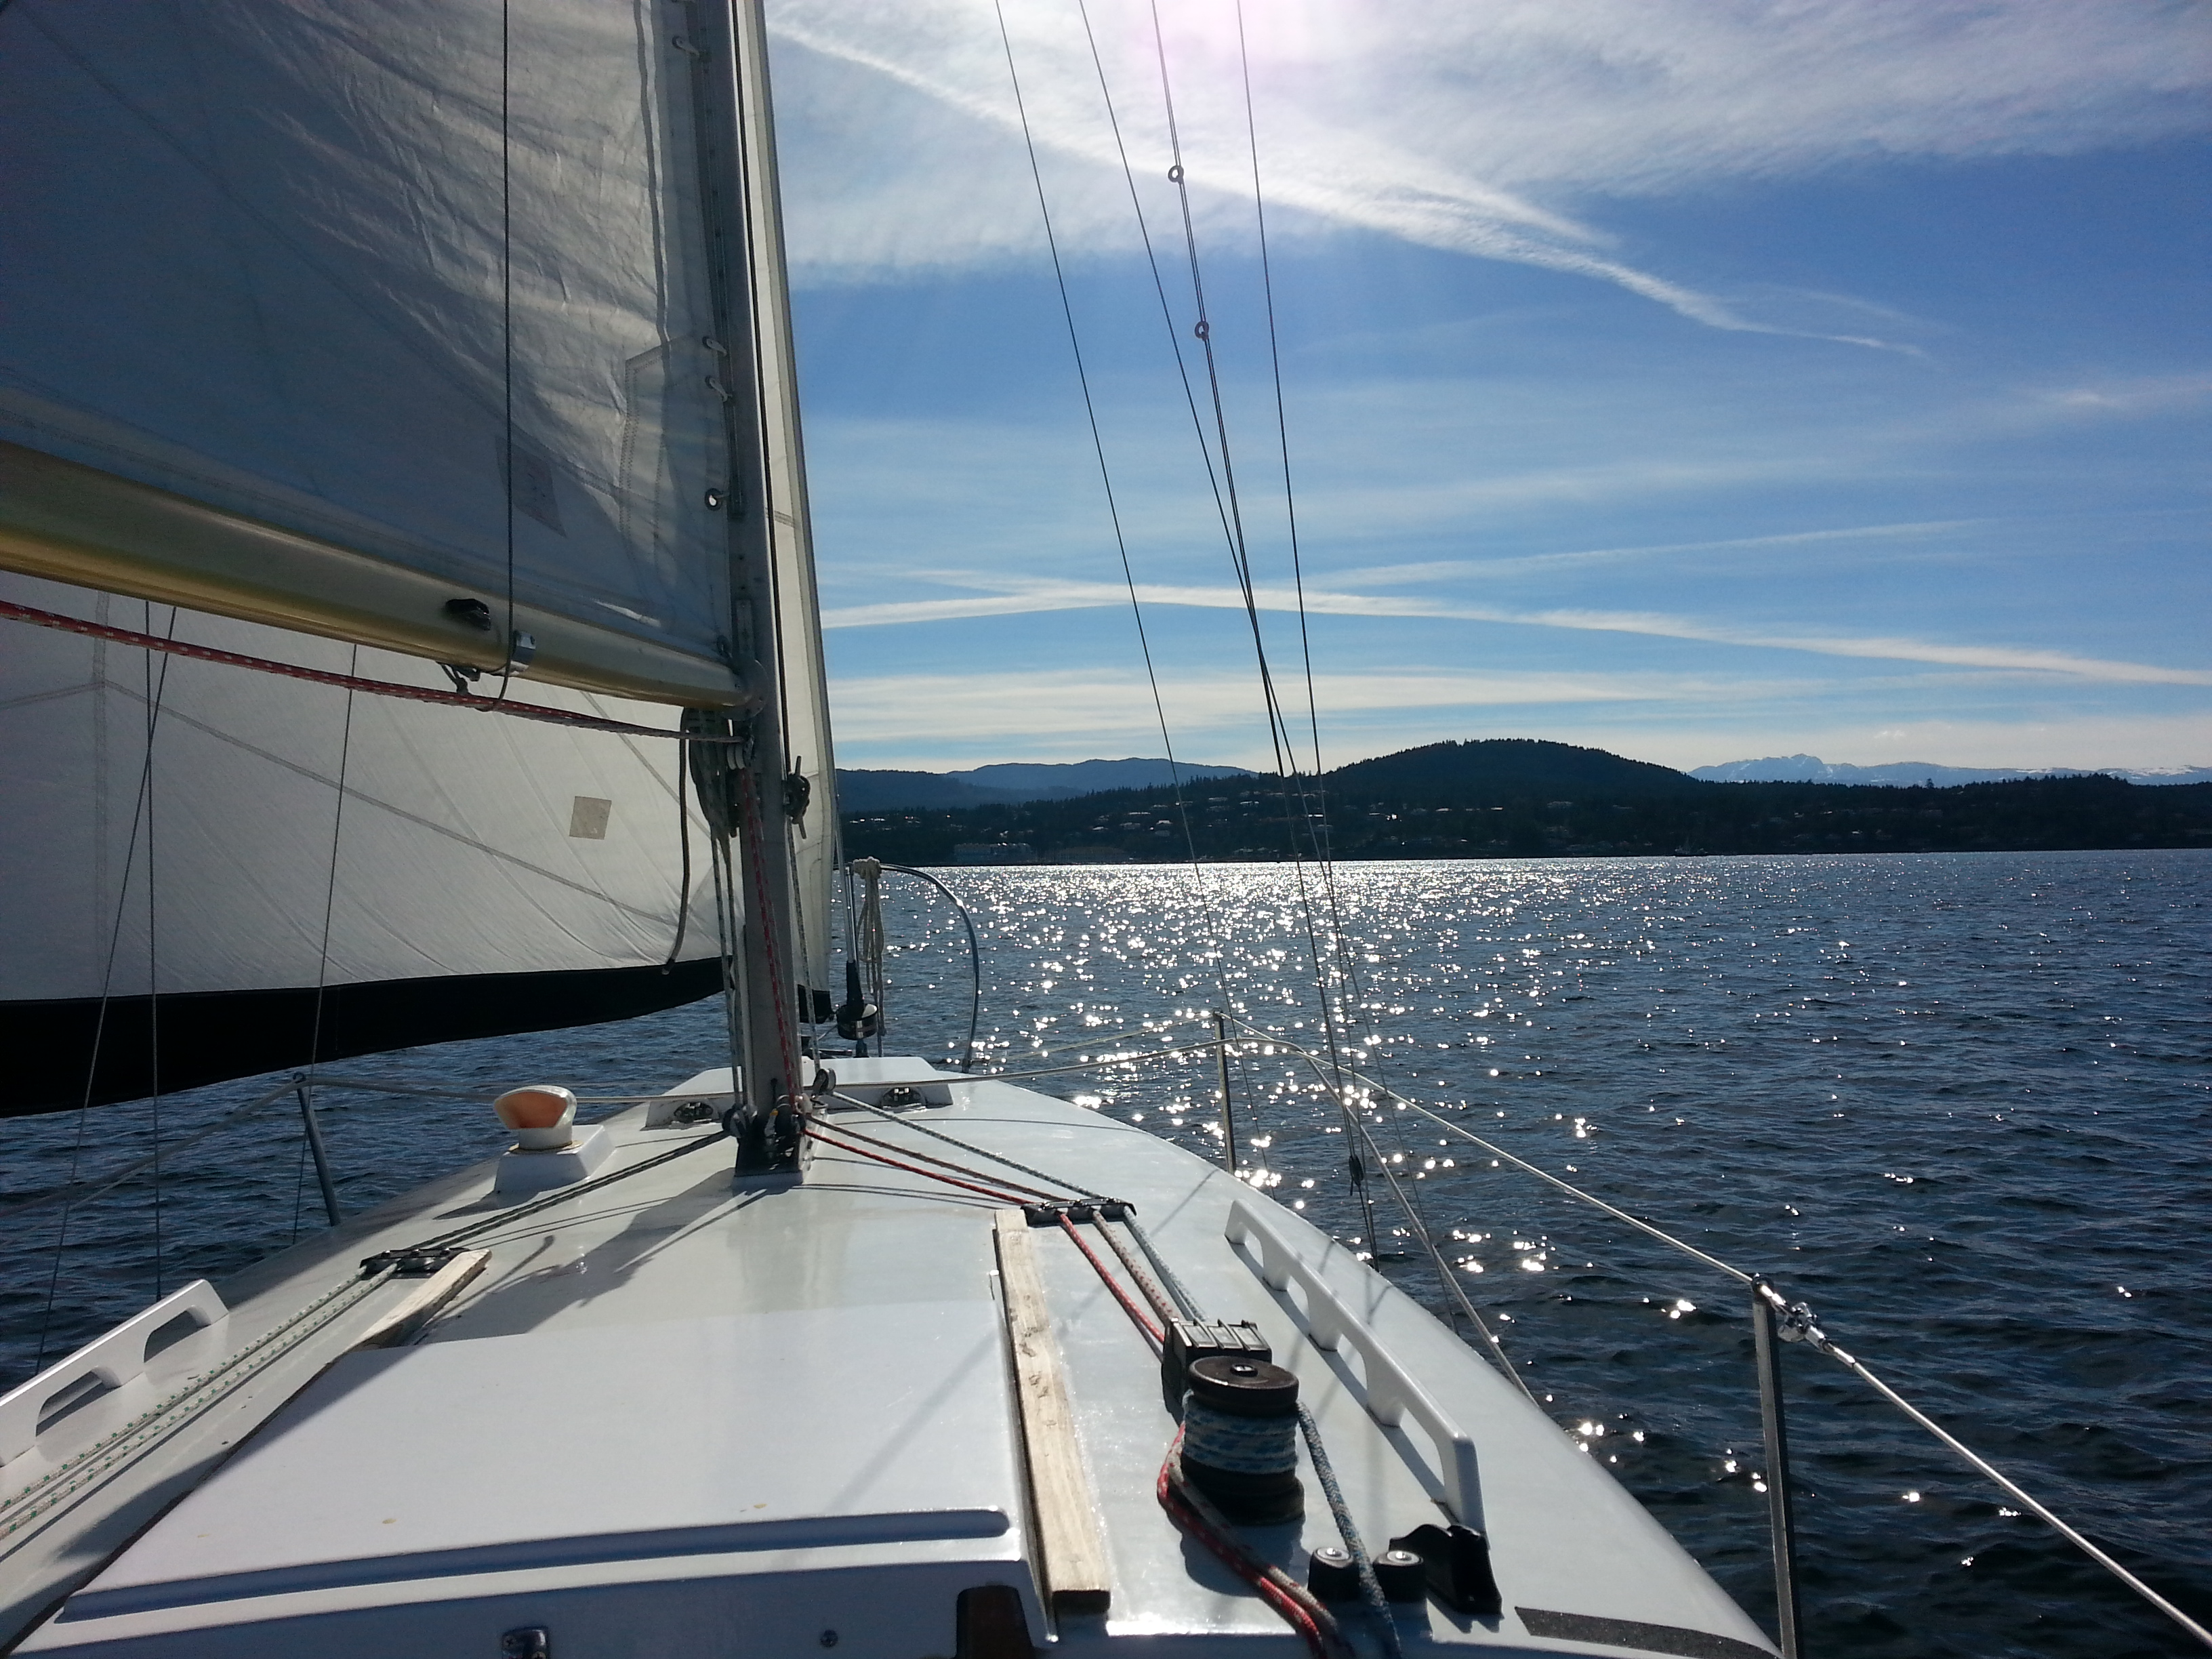 Sailing the Salish Sea